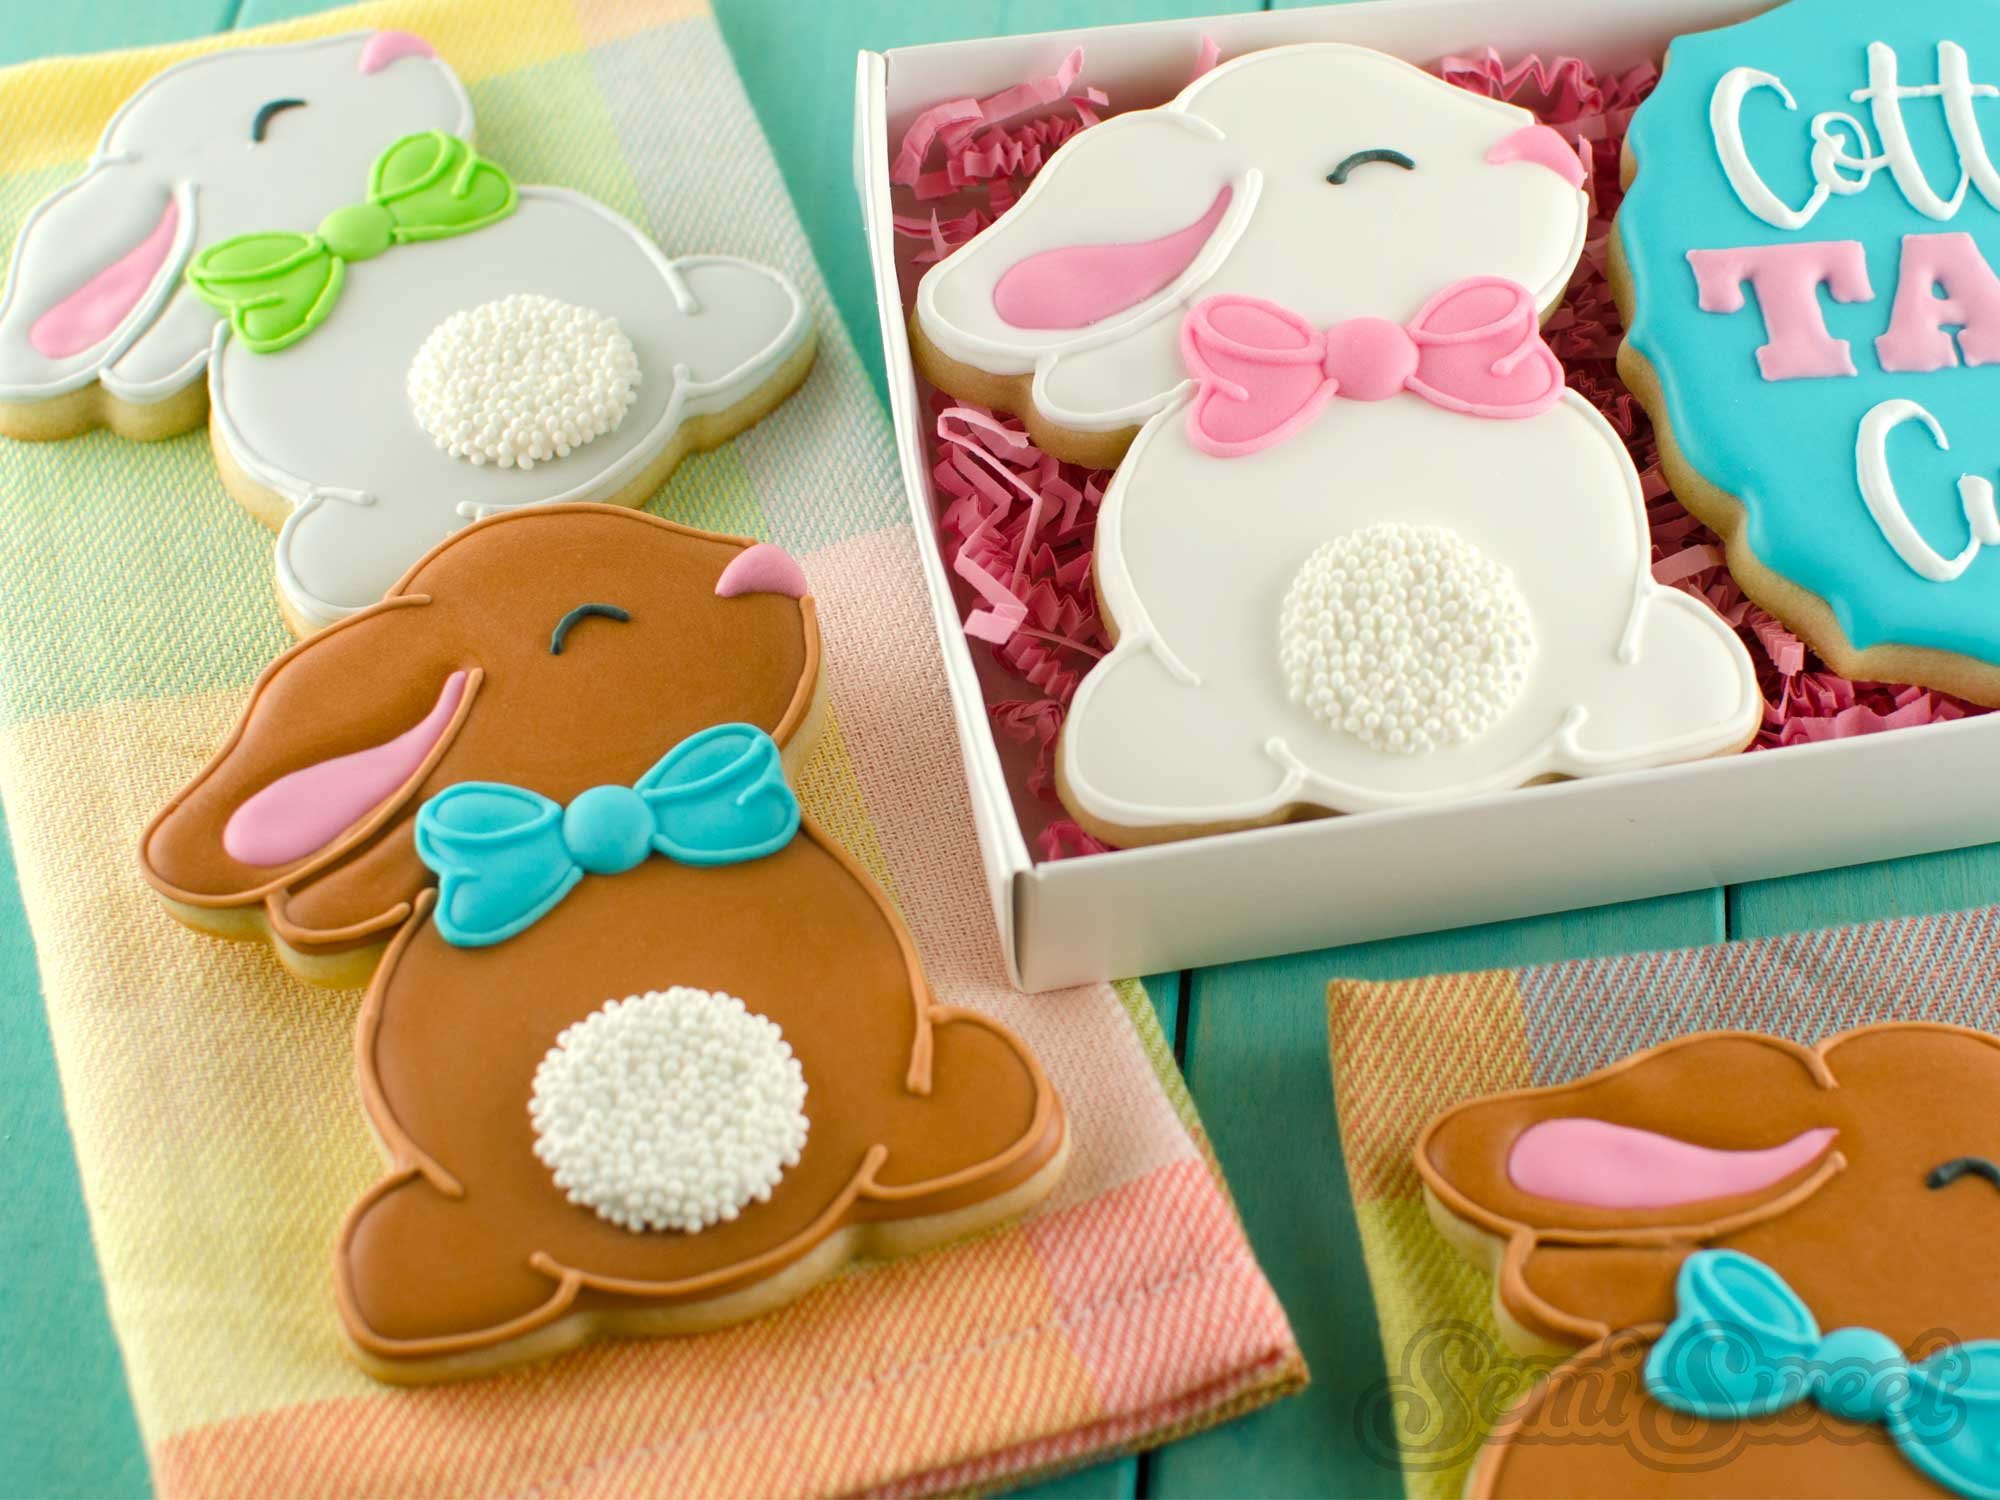 How to Make Cottontail Bunny Cookies